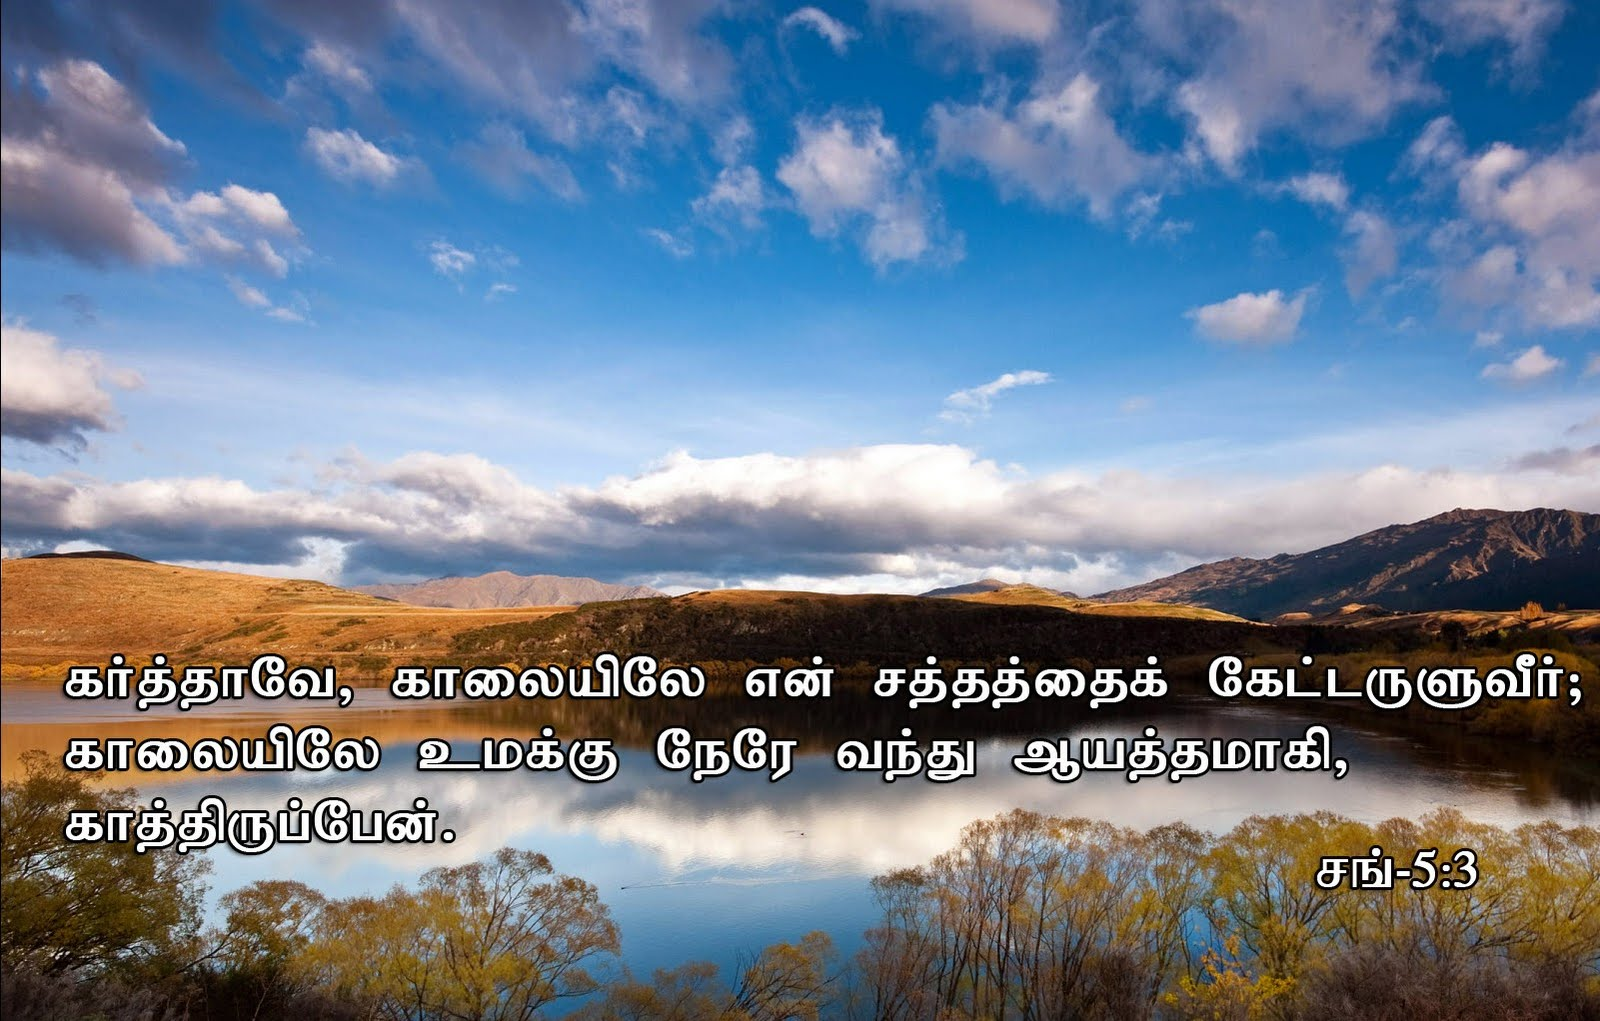 BIBILICAL WALLPAPERS Tamil Christian Wallpapers